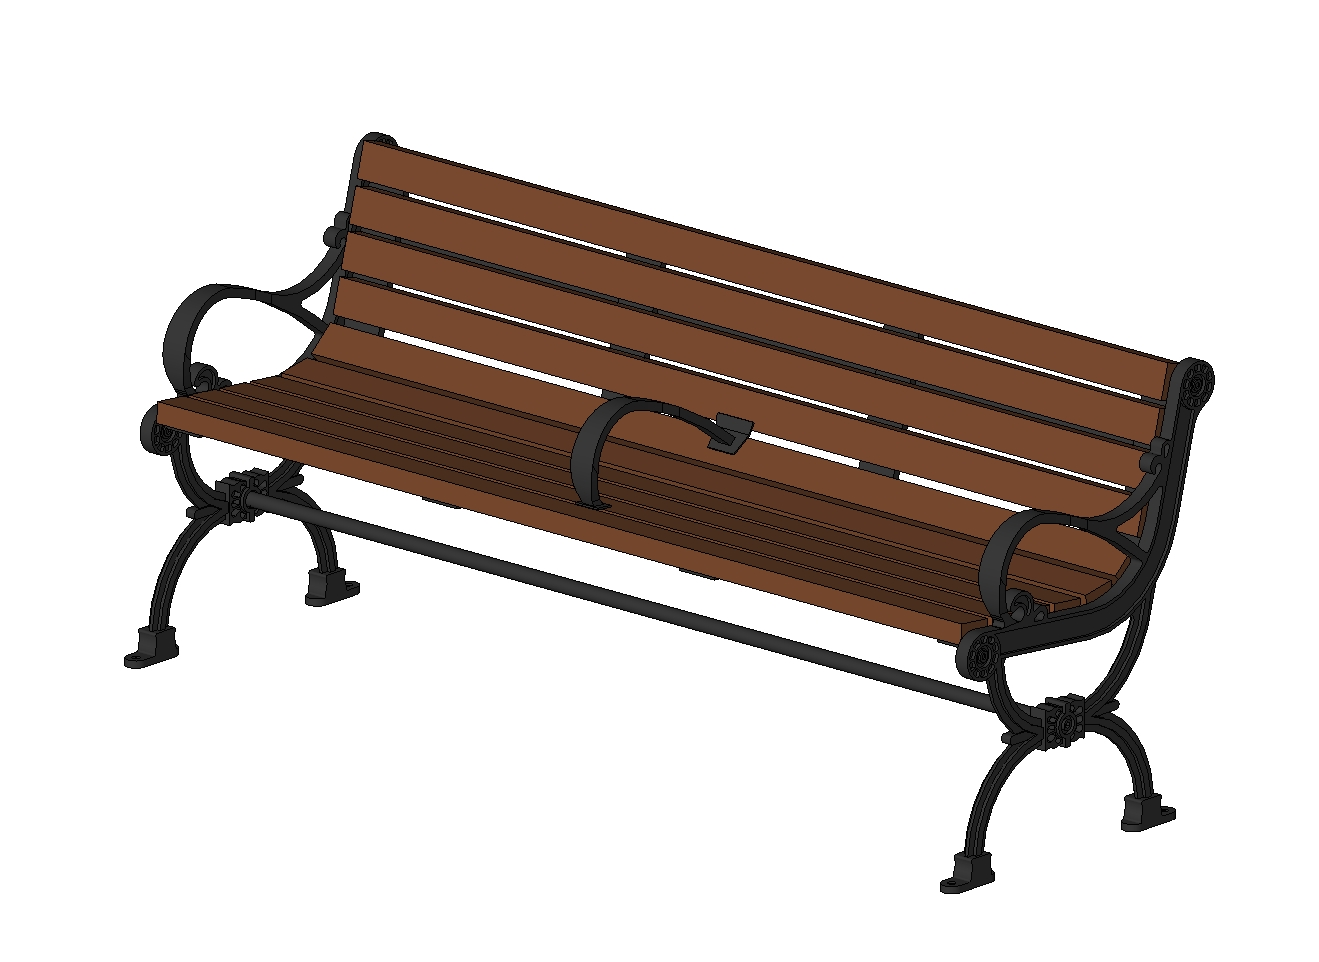 Bench for outdoor use for gardens